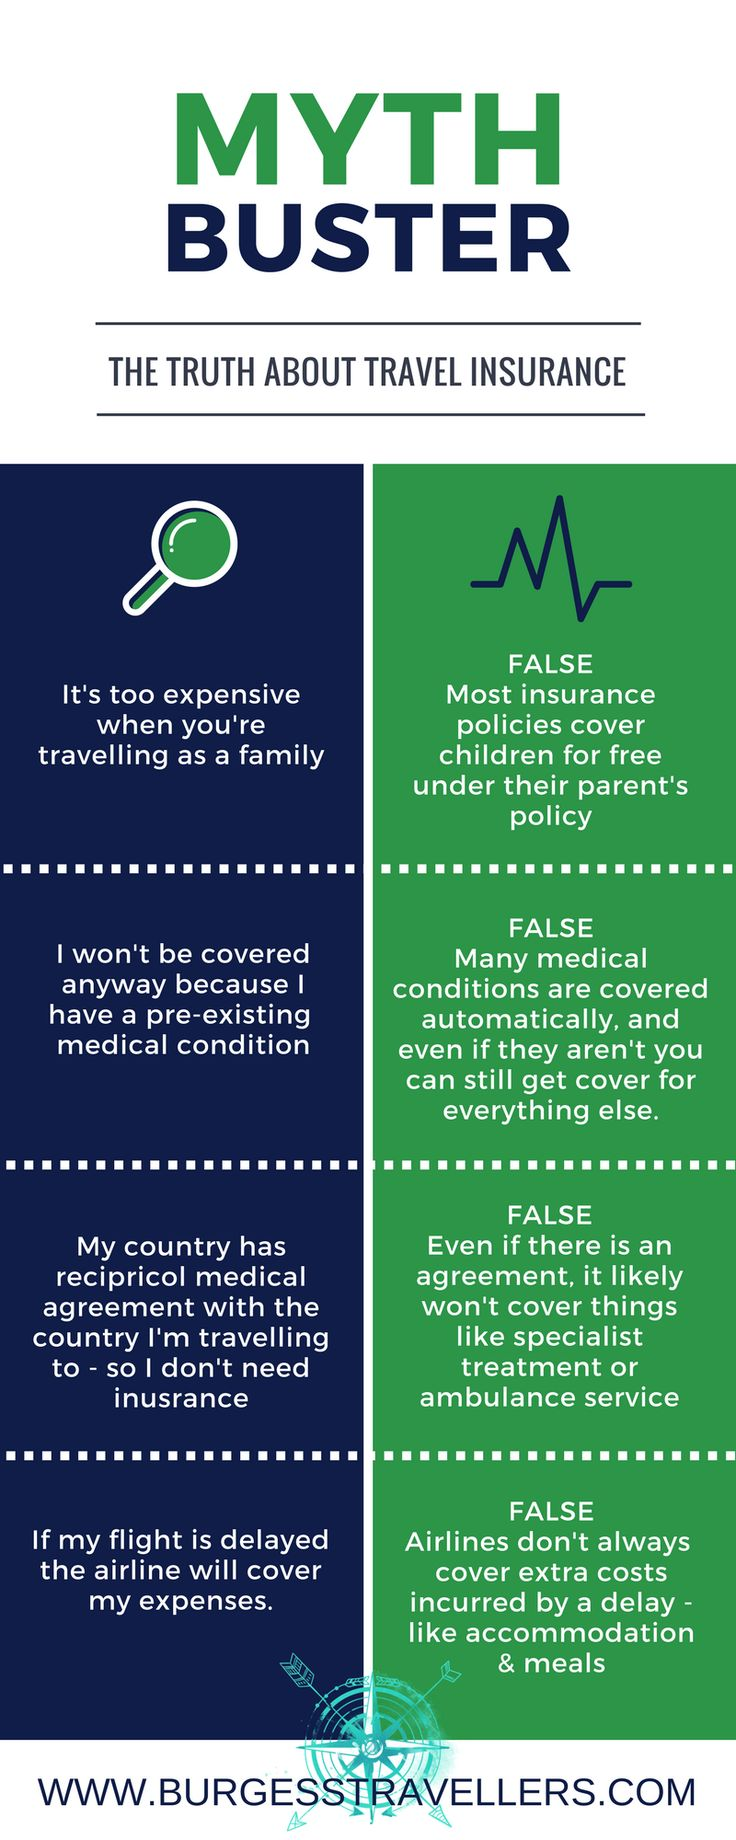 Popular travel insurance myths and why you really need insurance for your trip (affiliate link) - Read more here: http://anitaburgesstravel.co.nz/travel-insurance/